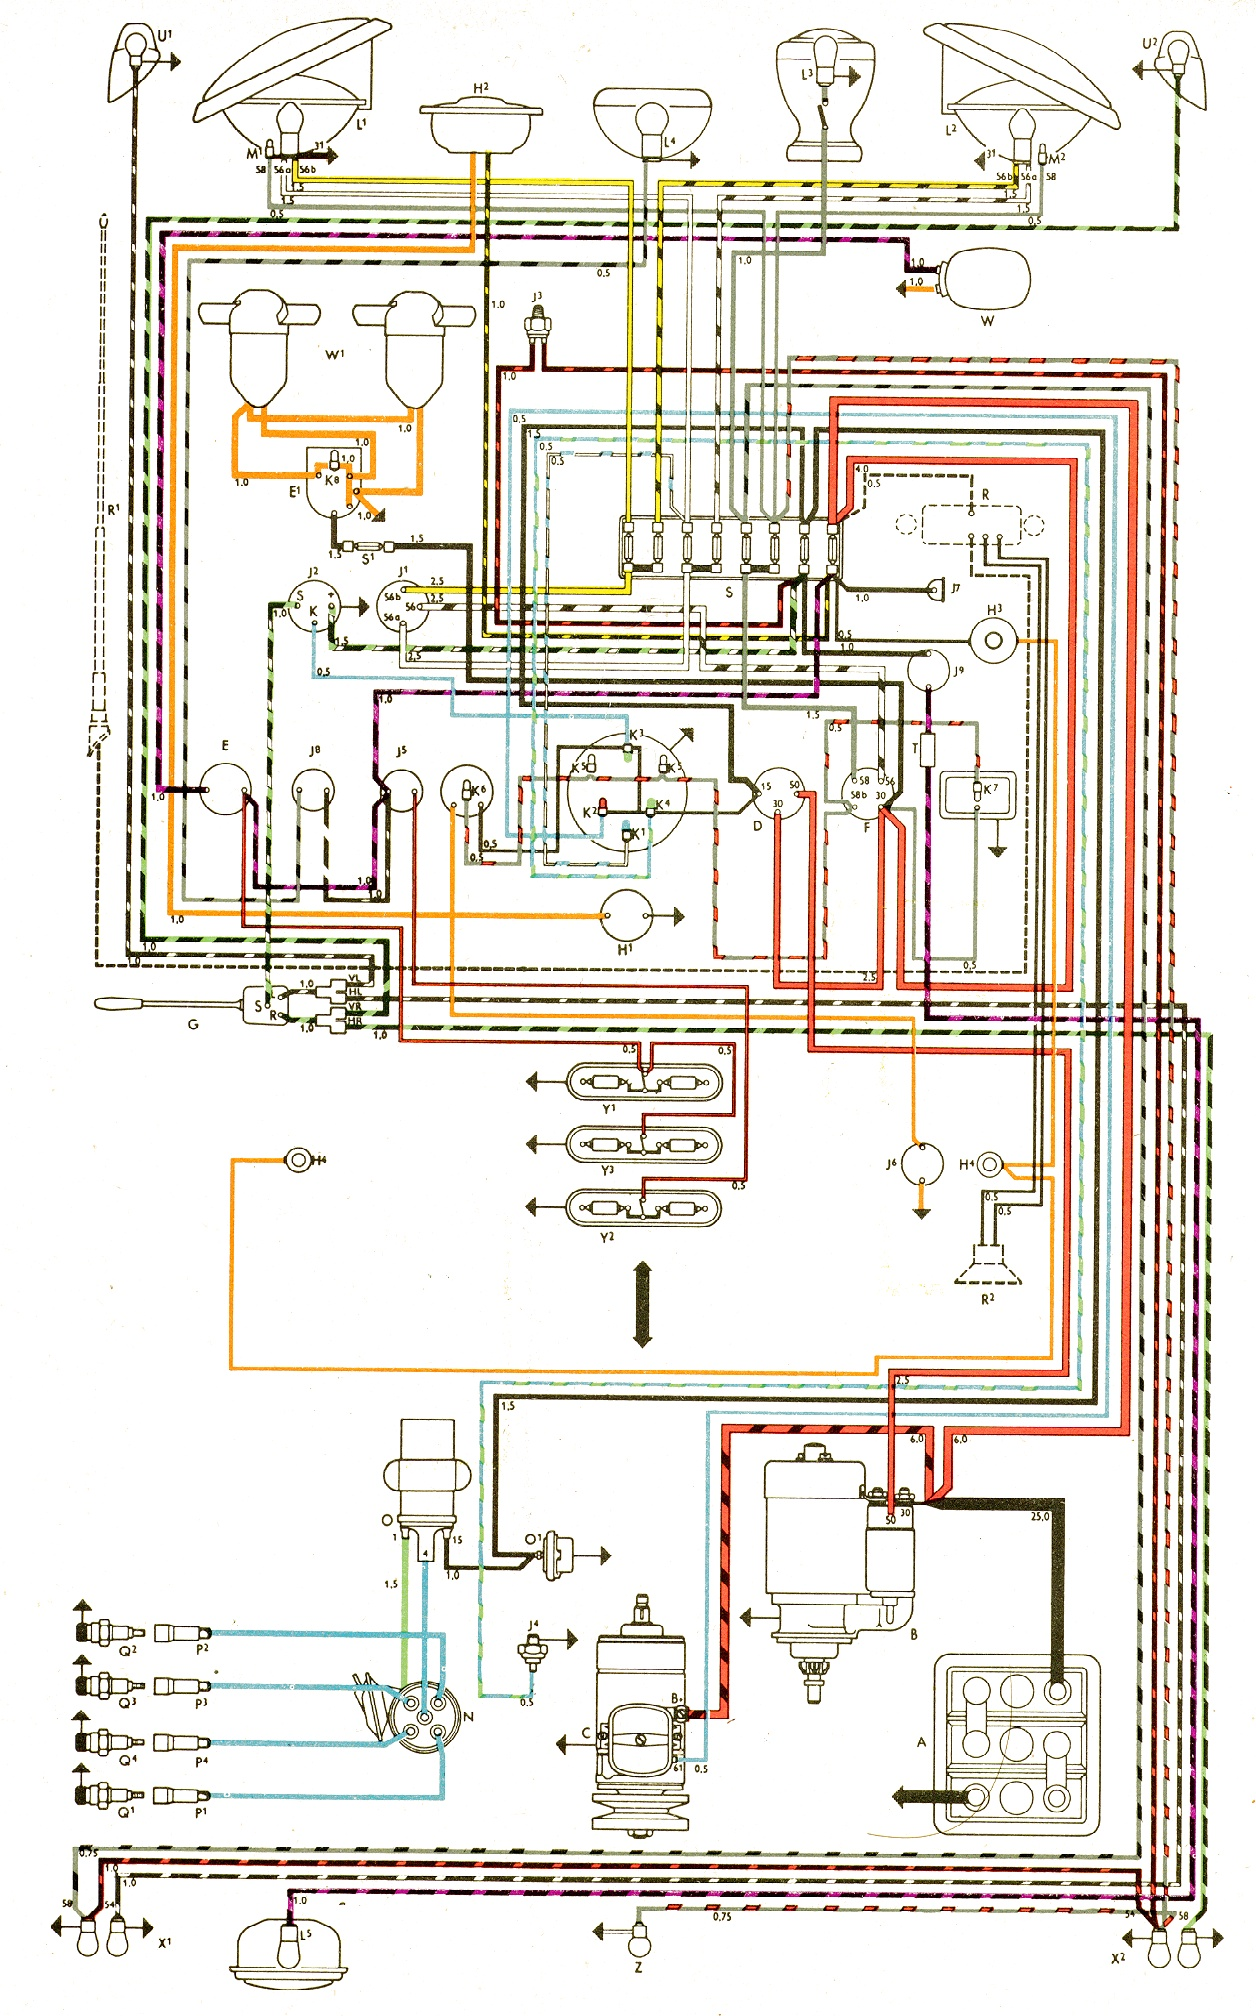 bus 62 bus wiring diagram vw wiring harness diagram \u2022 wiring diagrams j 1965 vw bus wiring harness at alyssarenee.co